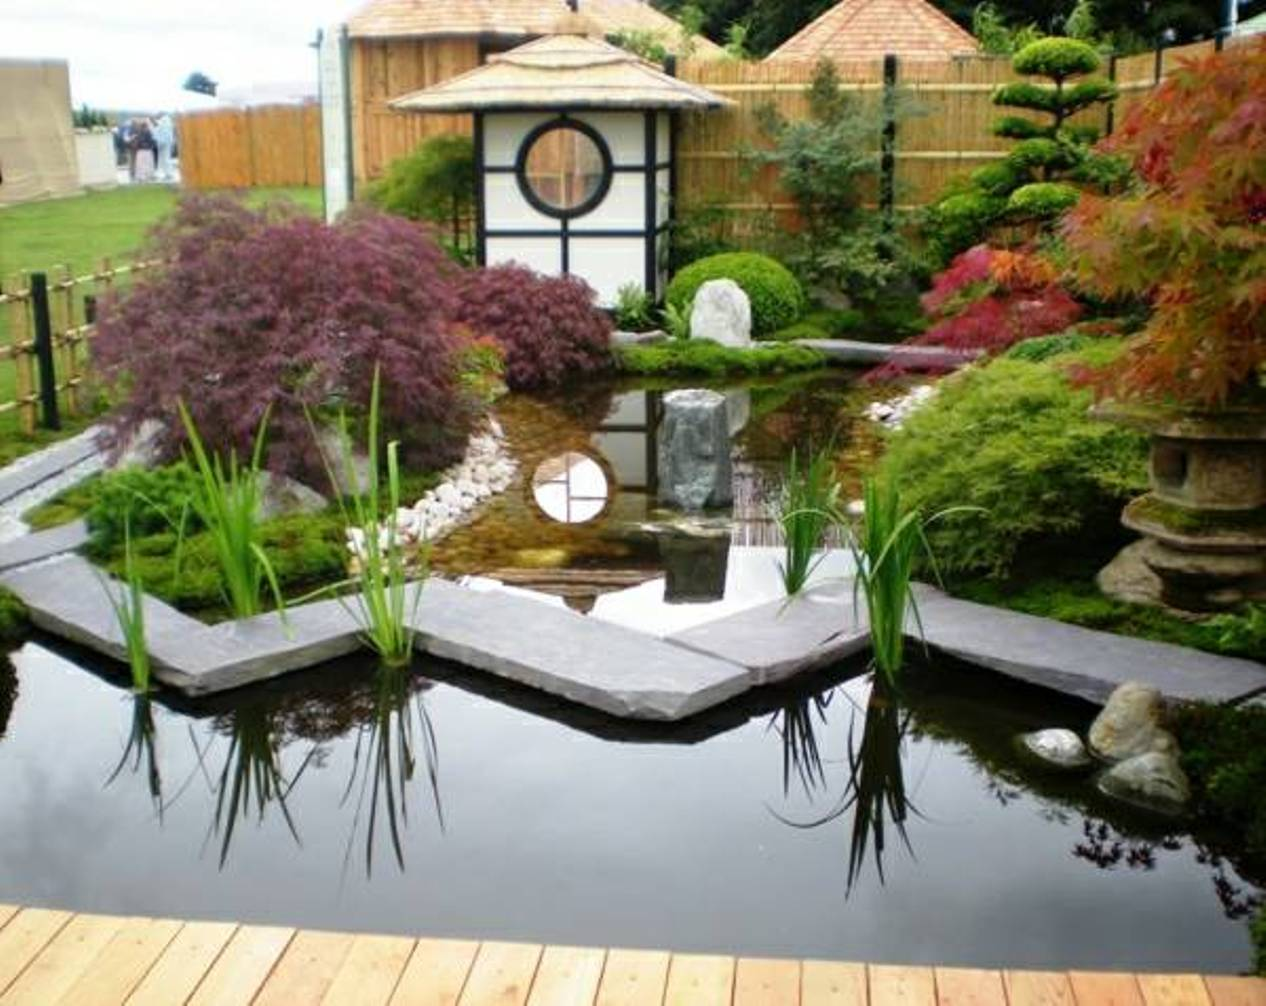 Pond design inspiration pond stars uk ltd dorset for Japanese garden design